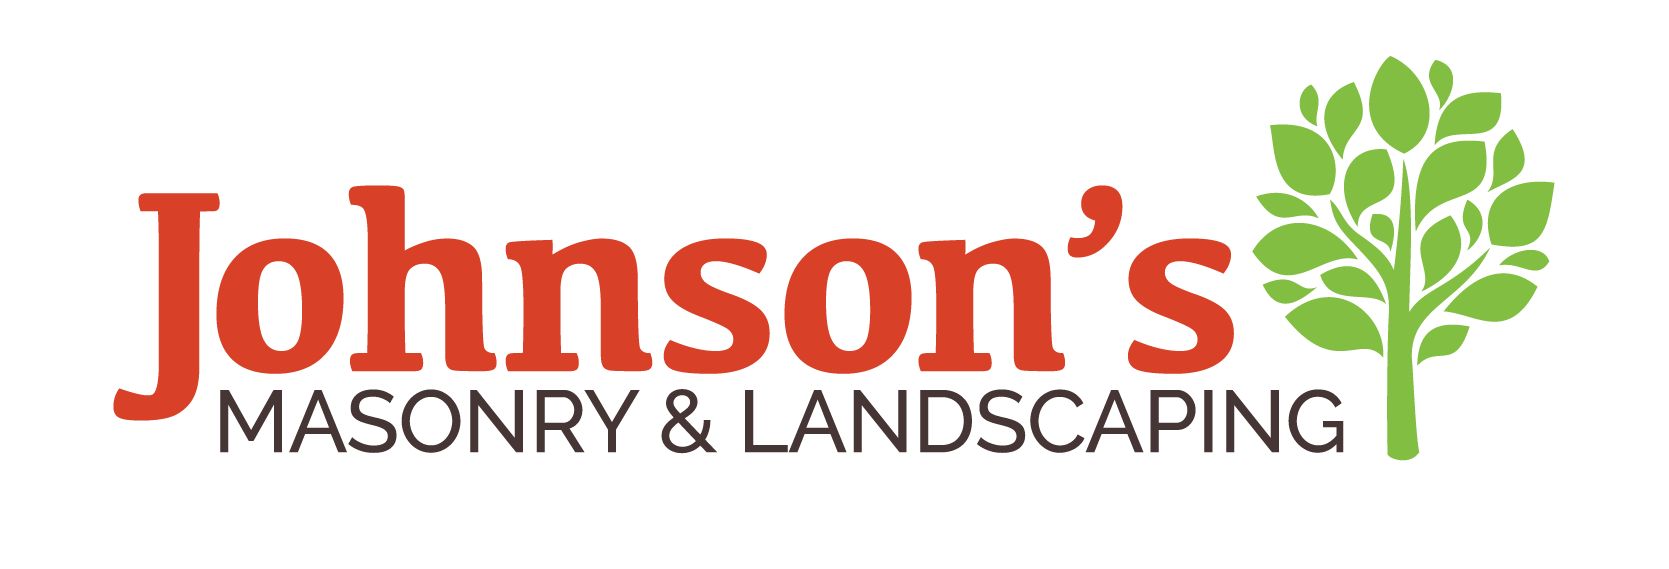 JohnsonsMasonryLandscaping_Logo COLOR.png